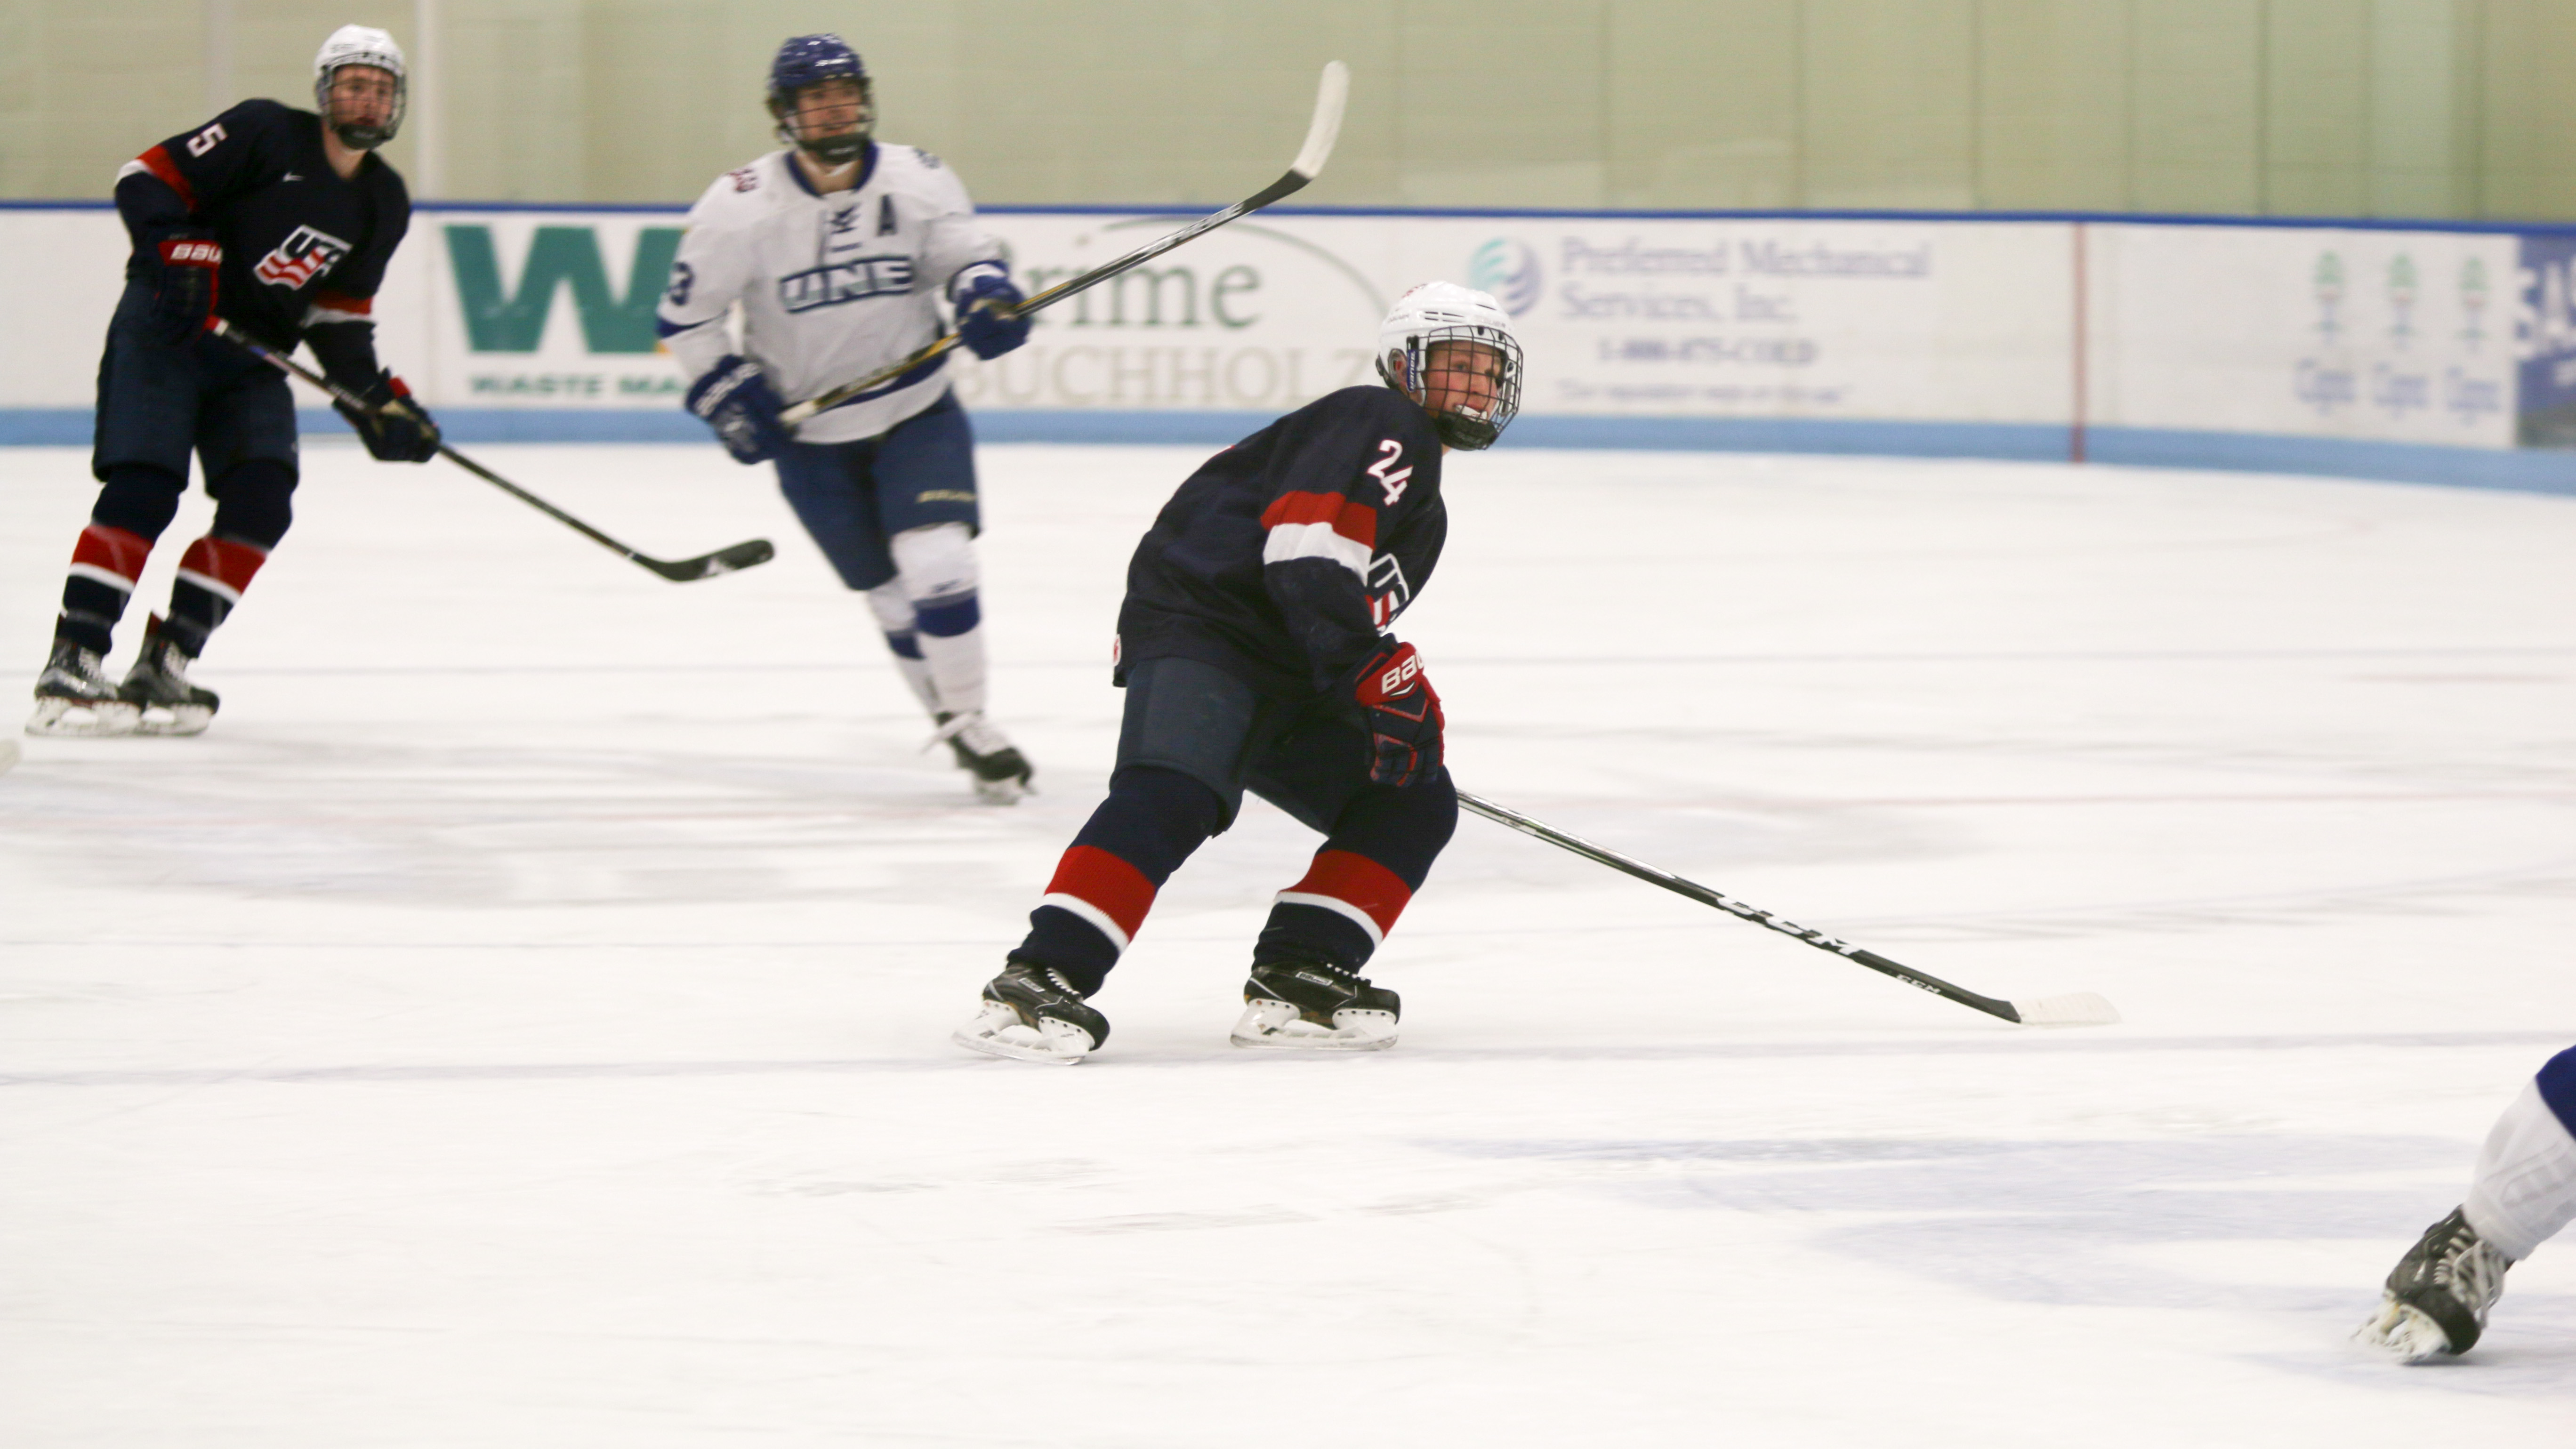 USA Hockey National Team Development Program Sean Dhooghe